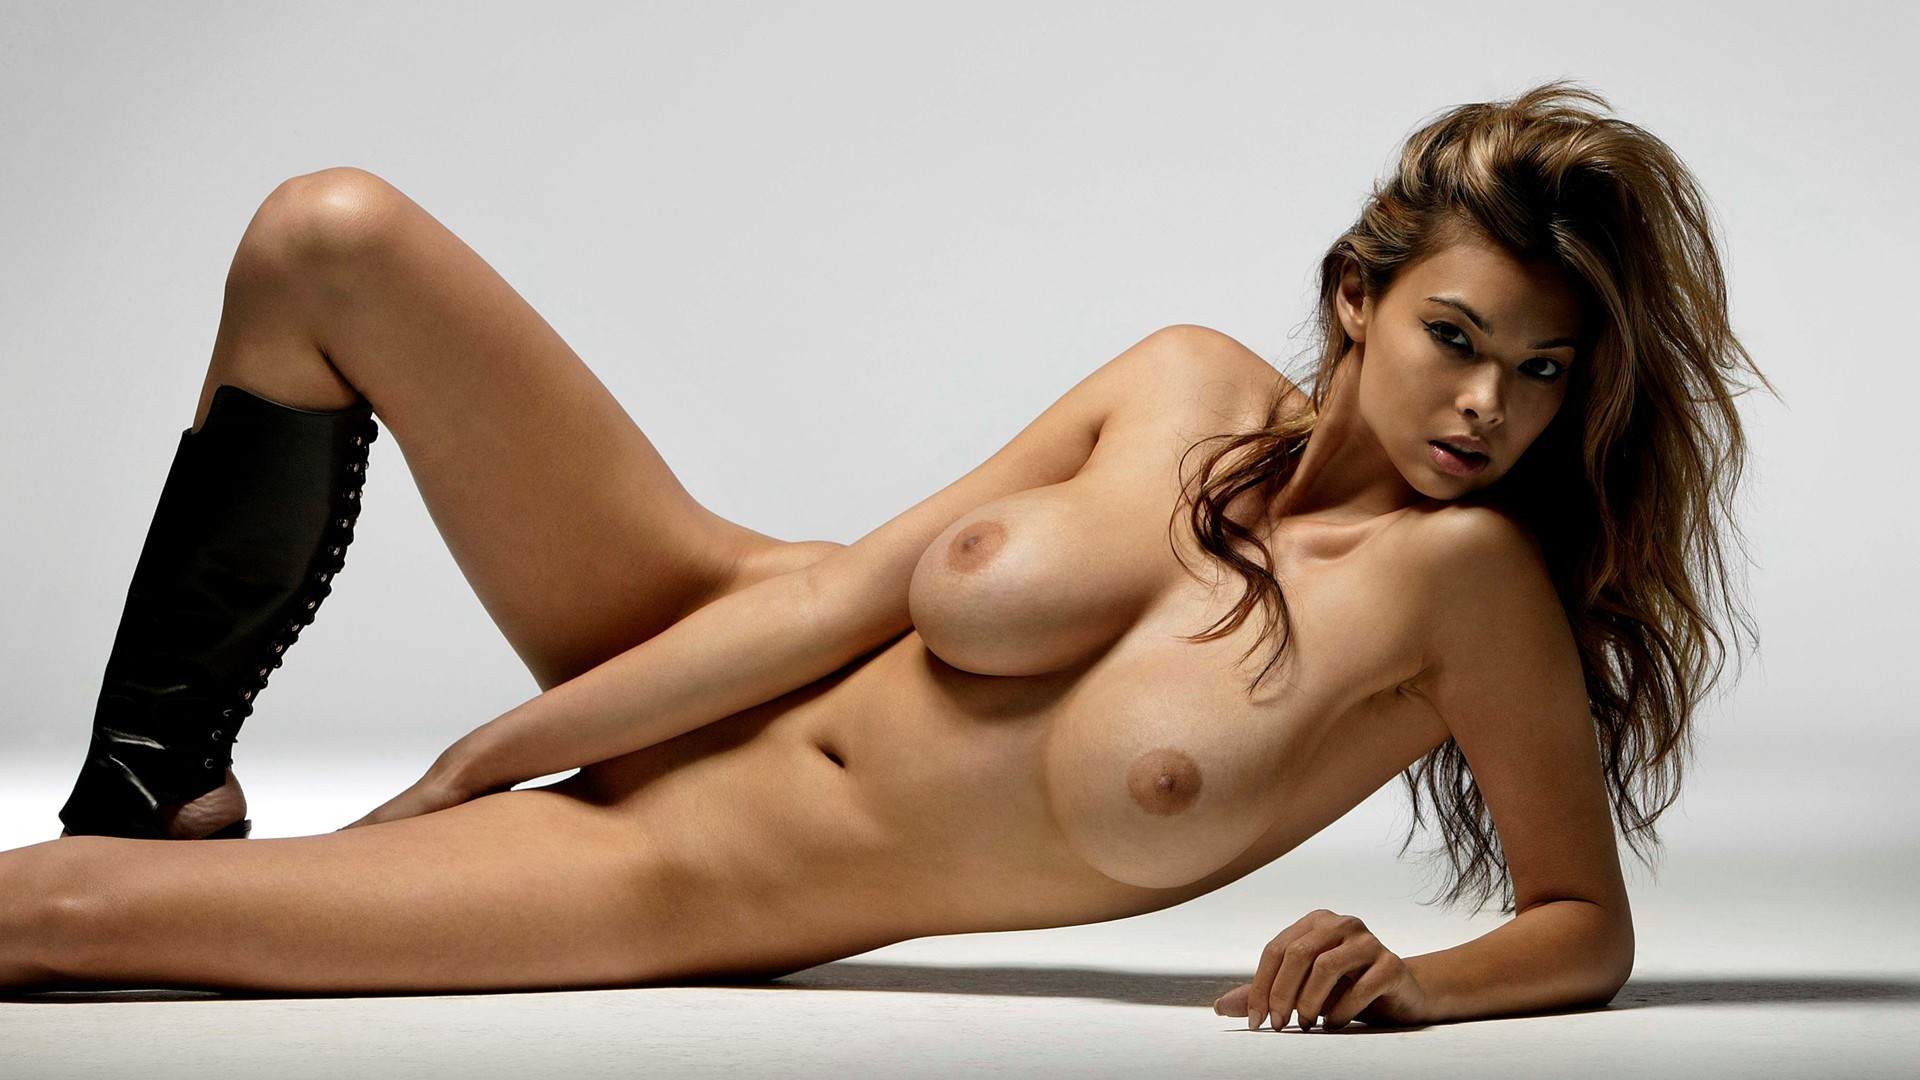 Teen incredibly sexy fully nude women